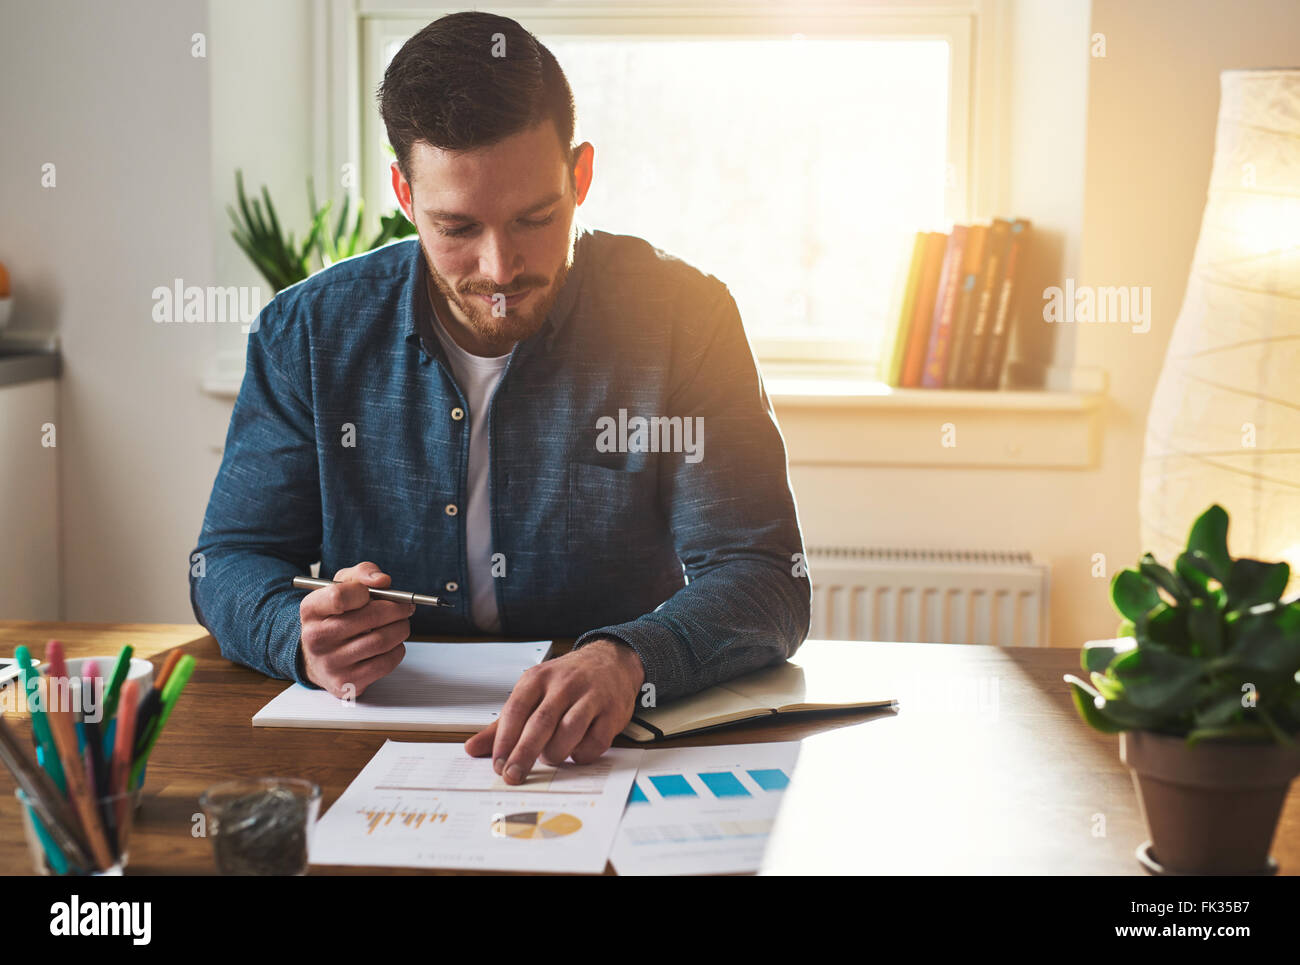 Entrepreneur working on business charts and graphs as he studies the performance of his small business and plans - Stock Image